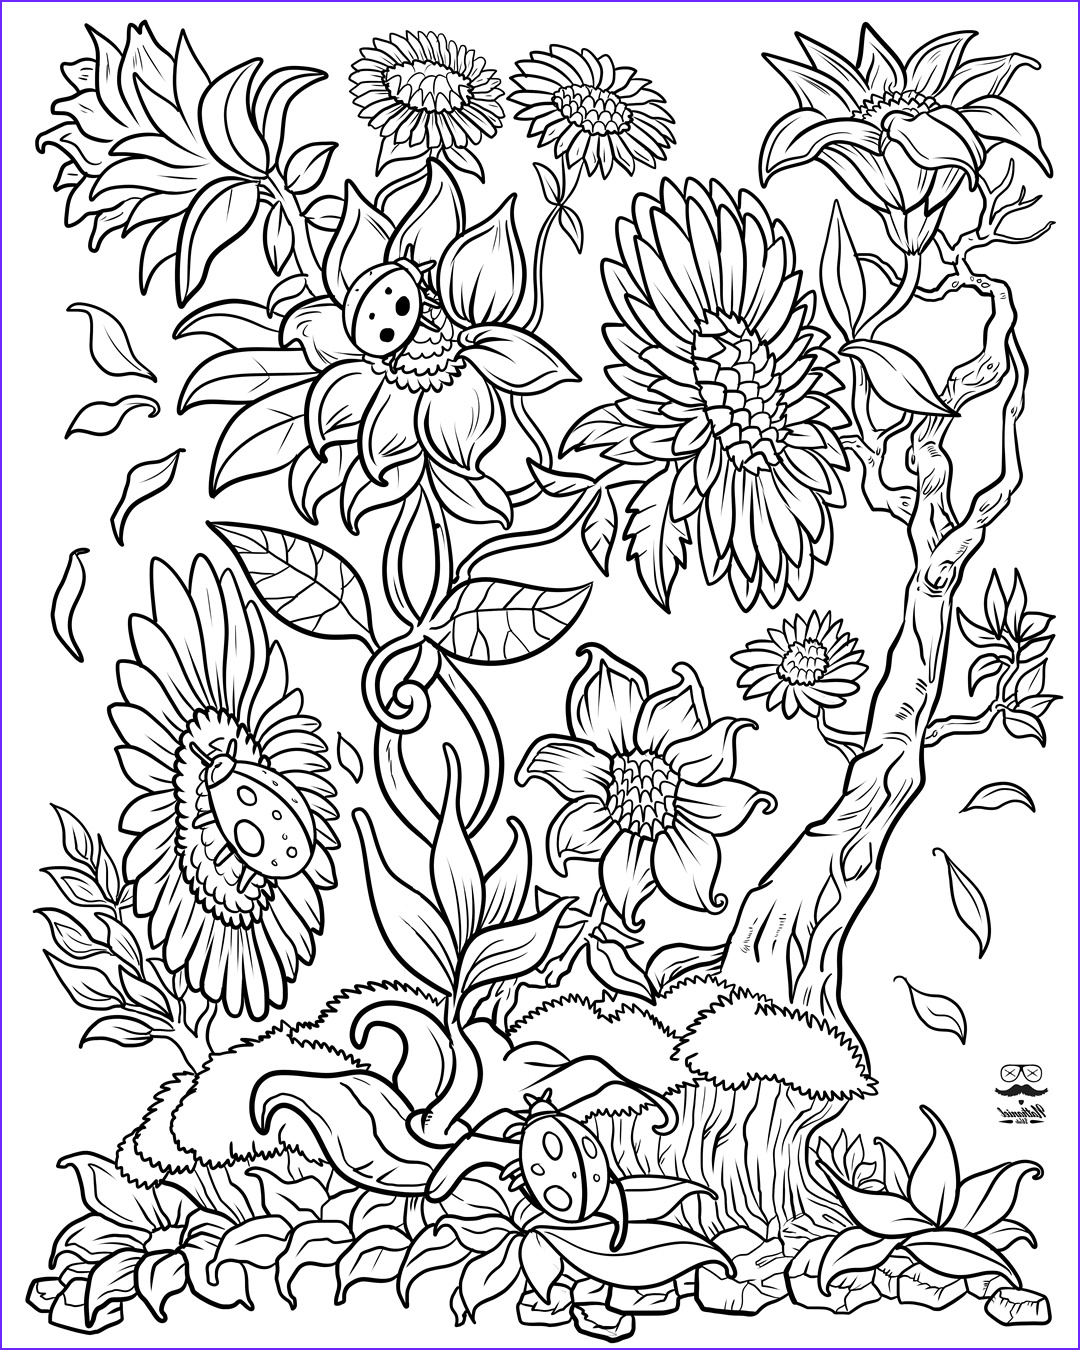 Adult Coloring Book Pages Beautiful Gallery Floral Fantasy Digital Version Adult Coloring Book